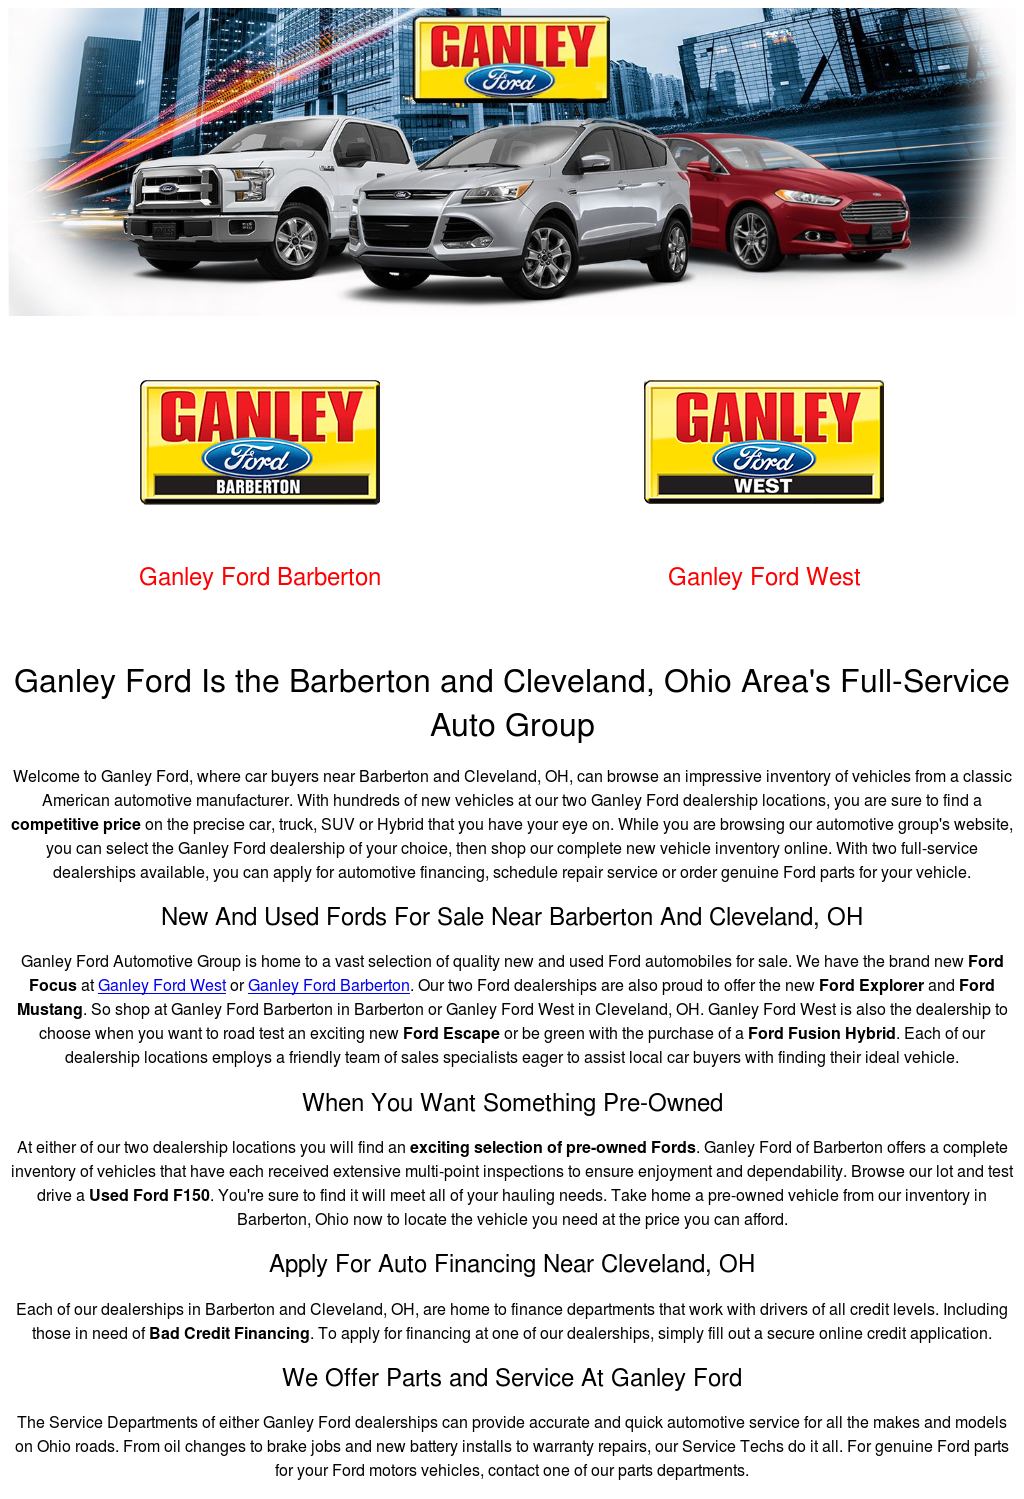 Ganley Ford Barberton >> Ganley Ford Competitors Revenue And Employees Owler Company Profile